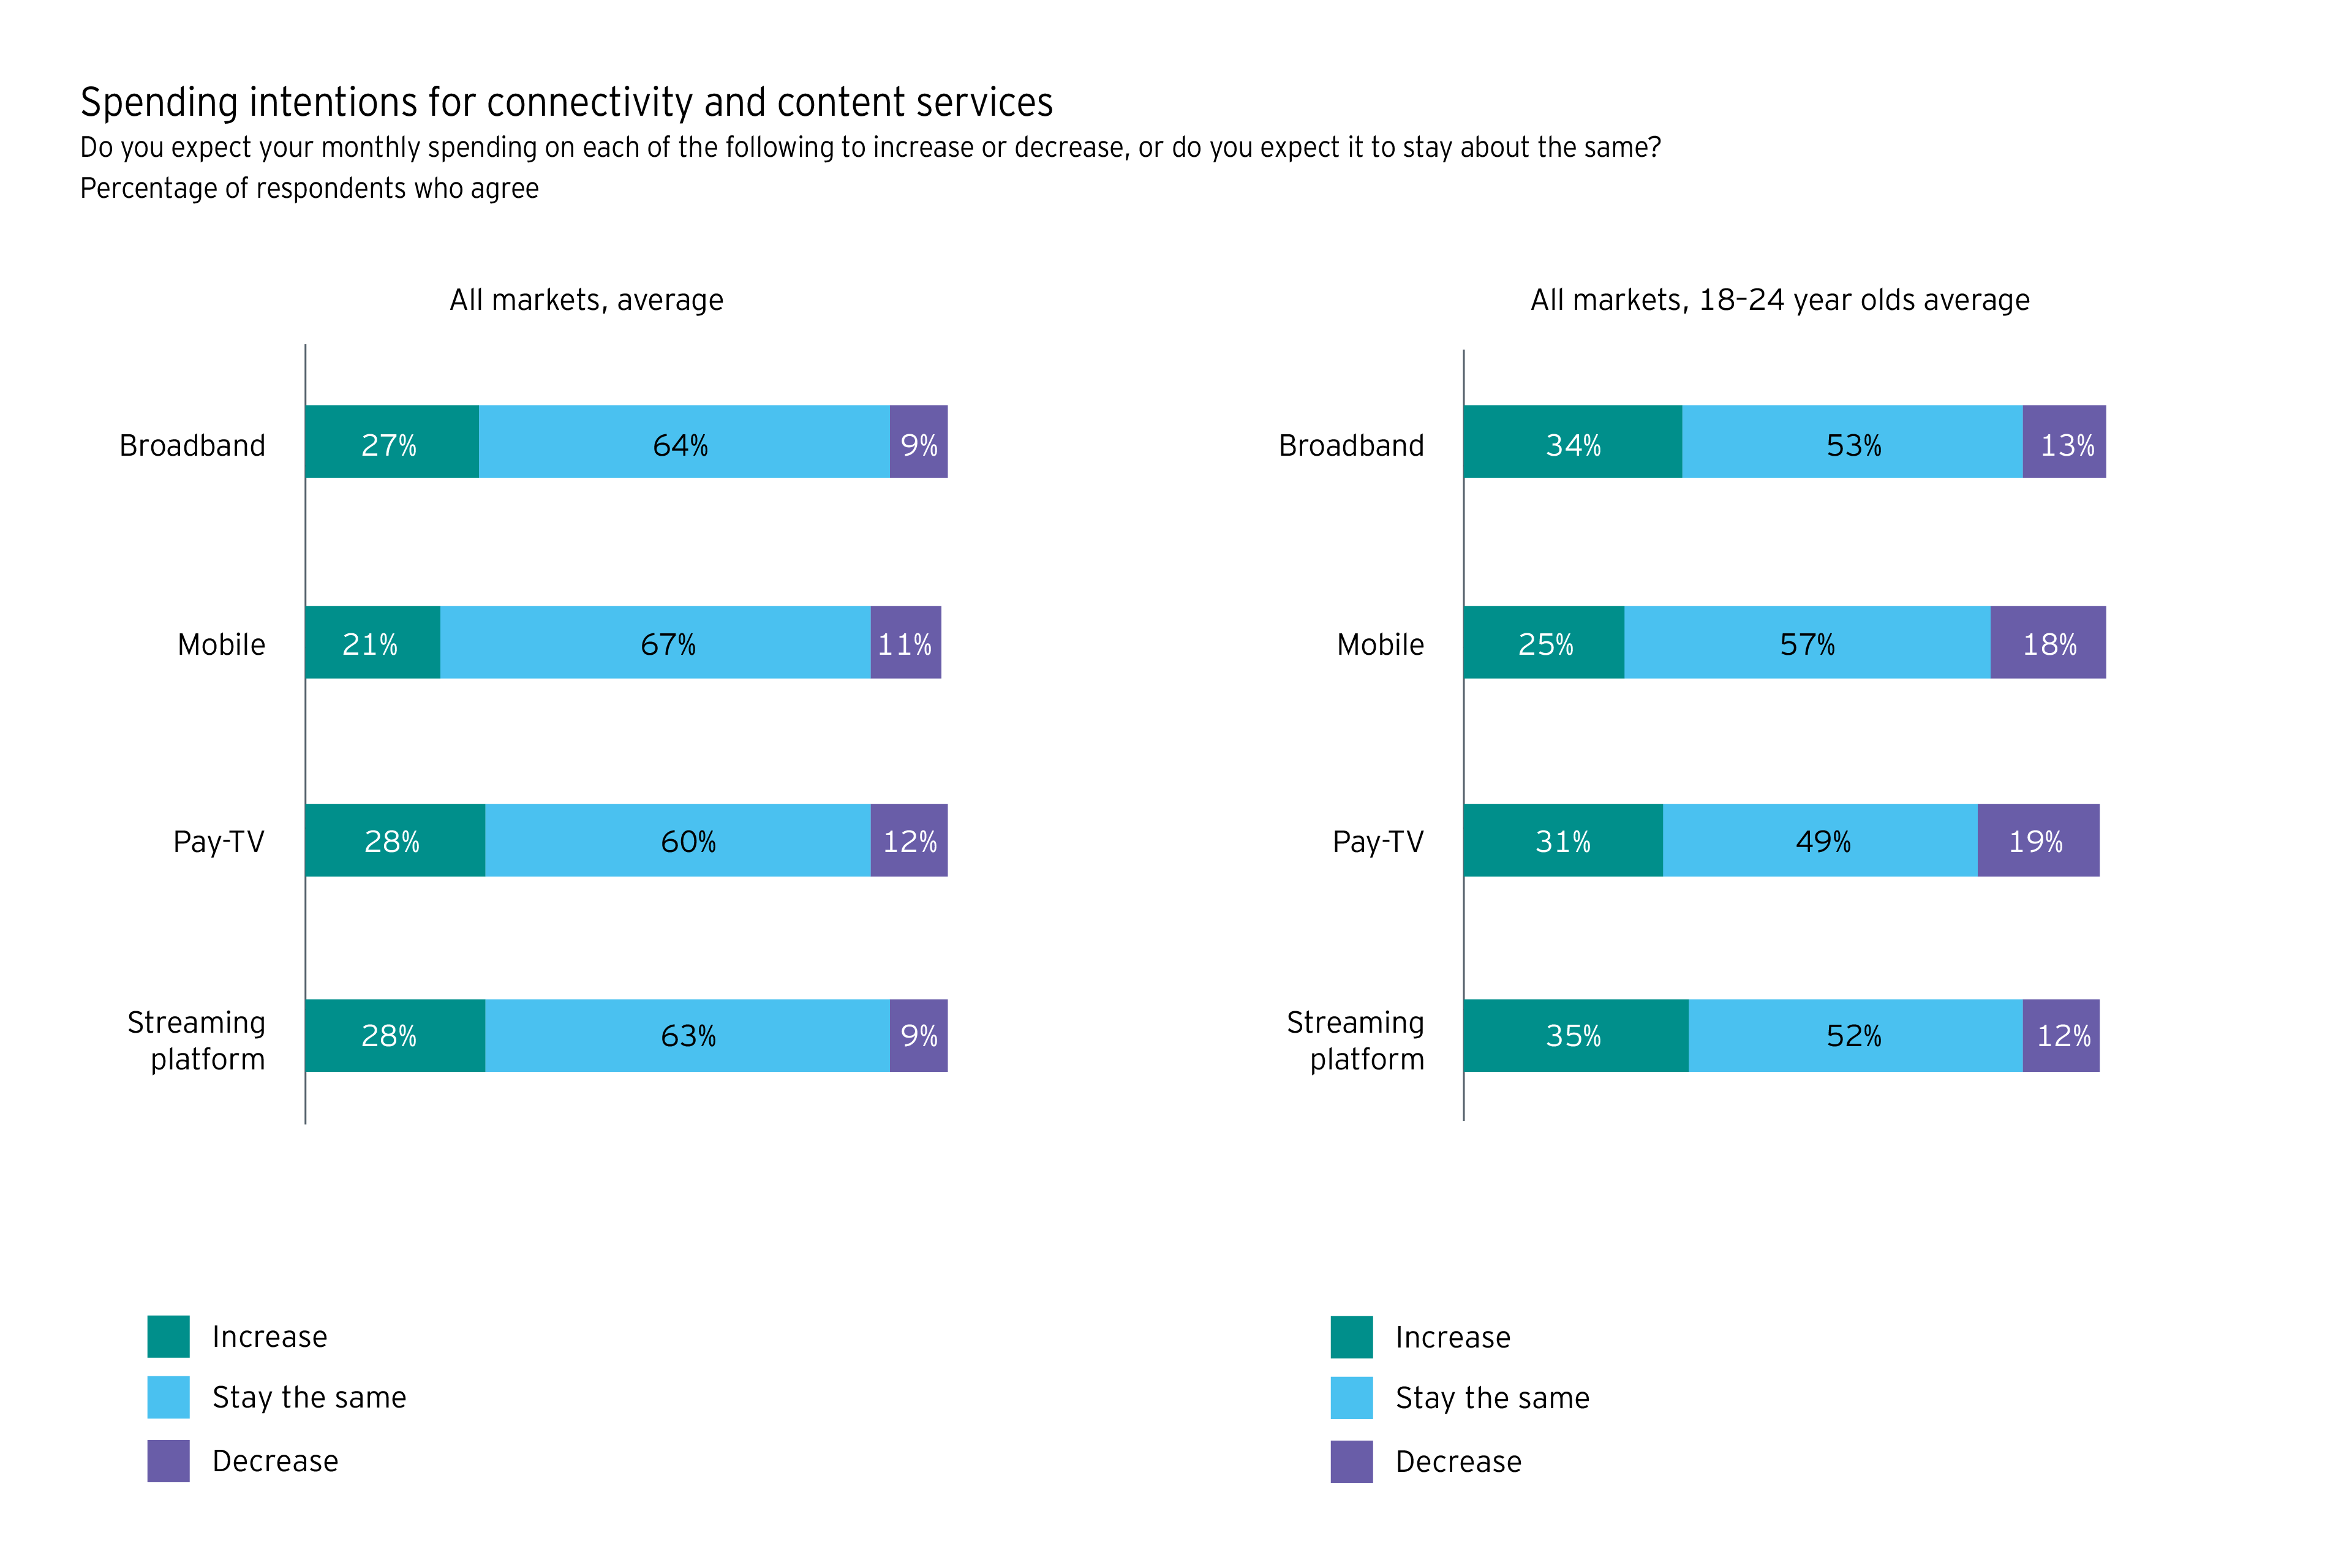 Chart of Spending intentions for connectivity and content services